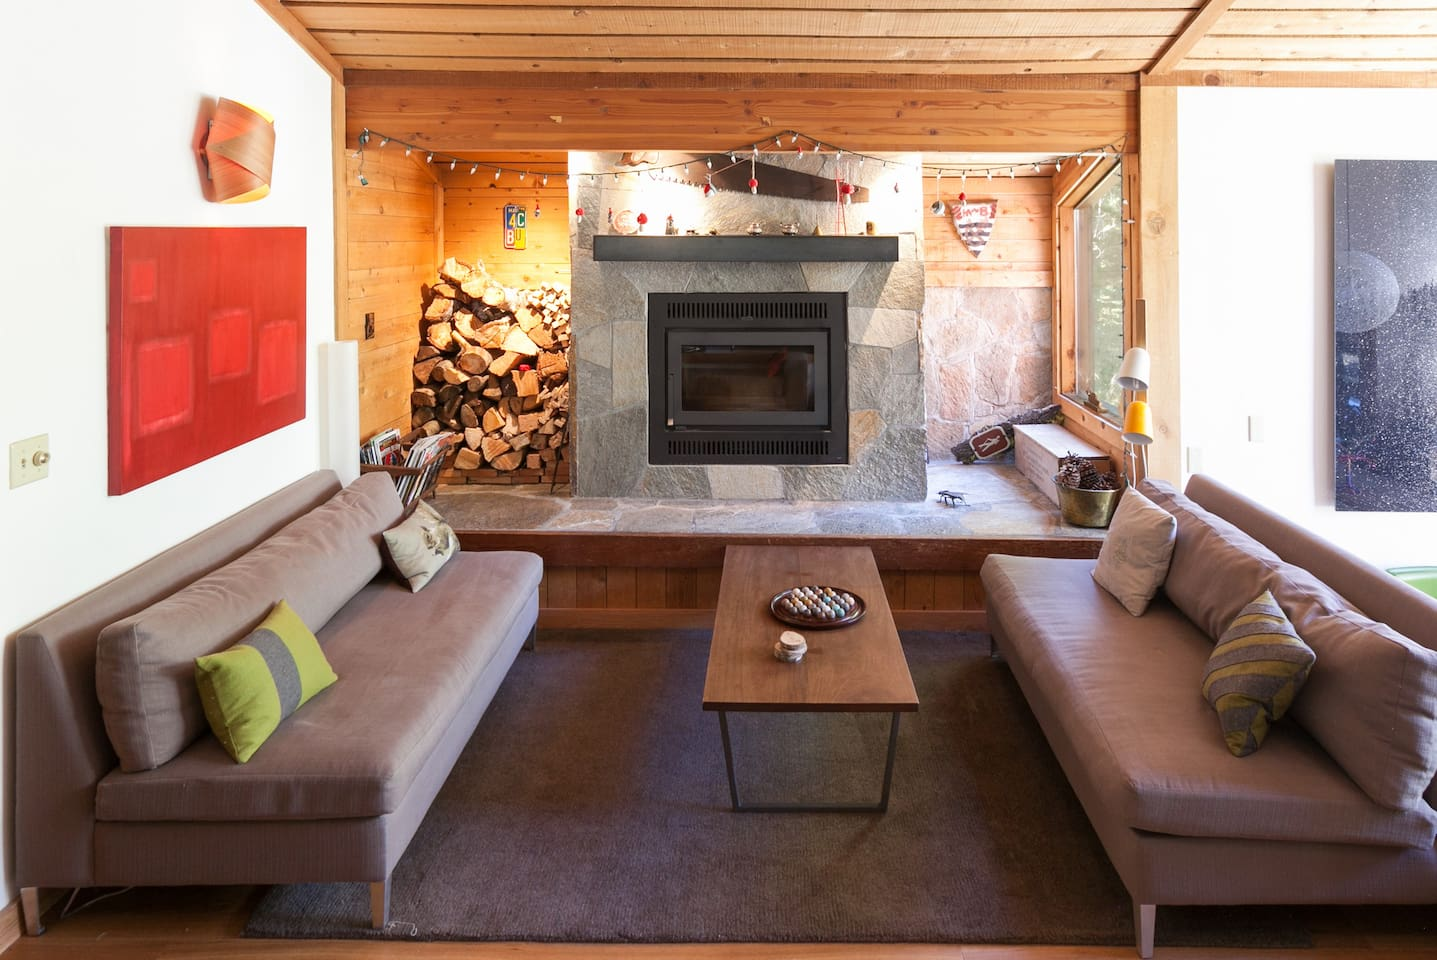 Cozy up and enjoy the wood burning fireplace.